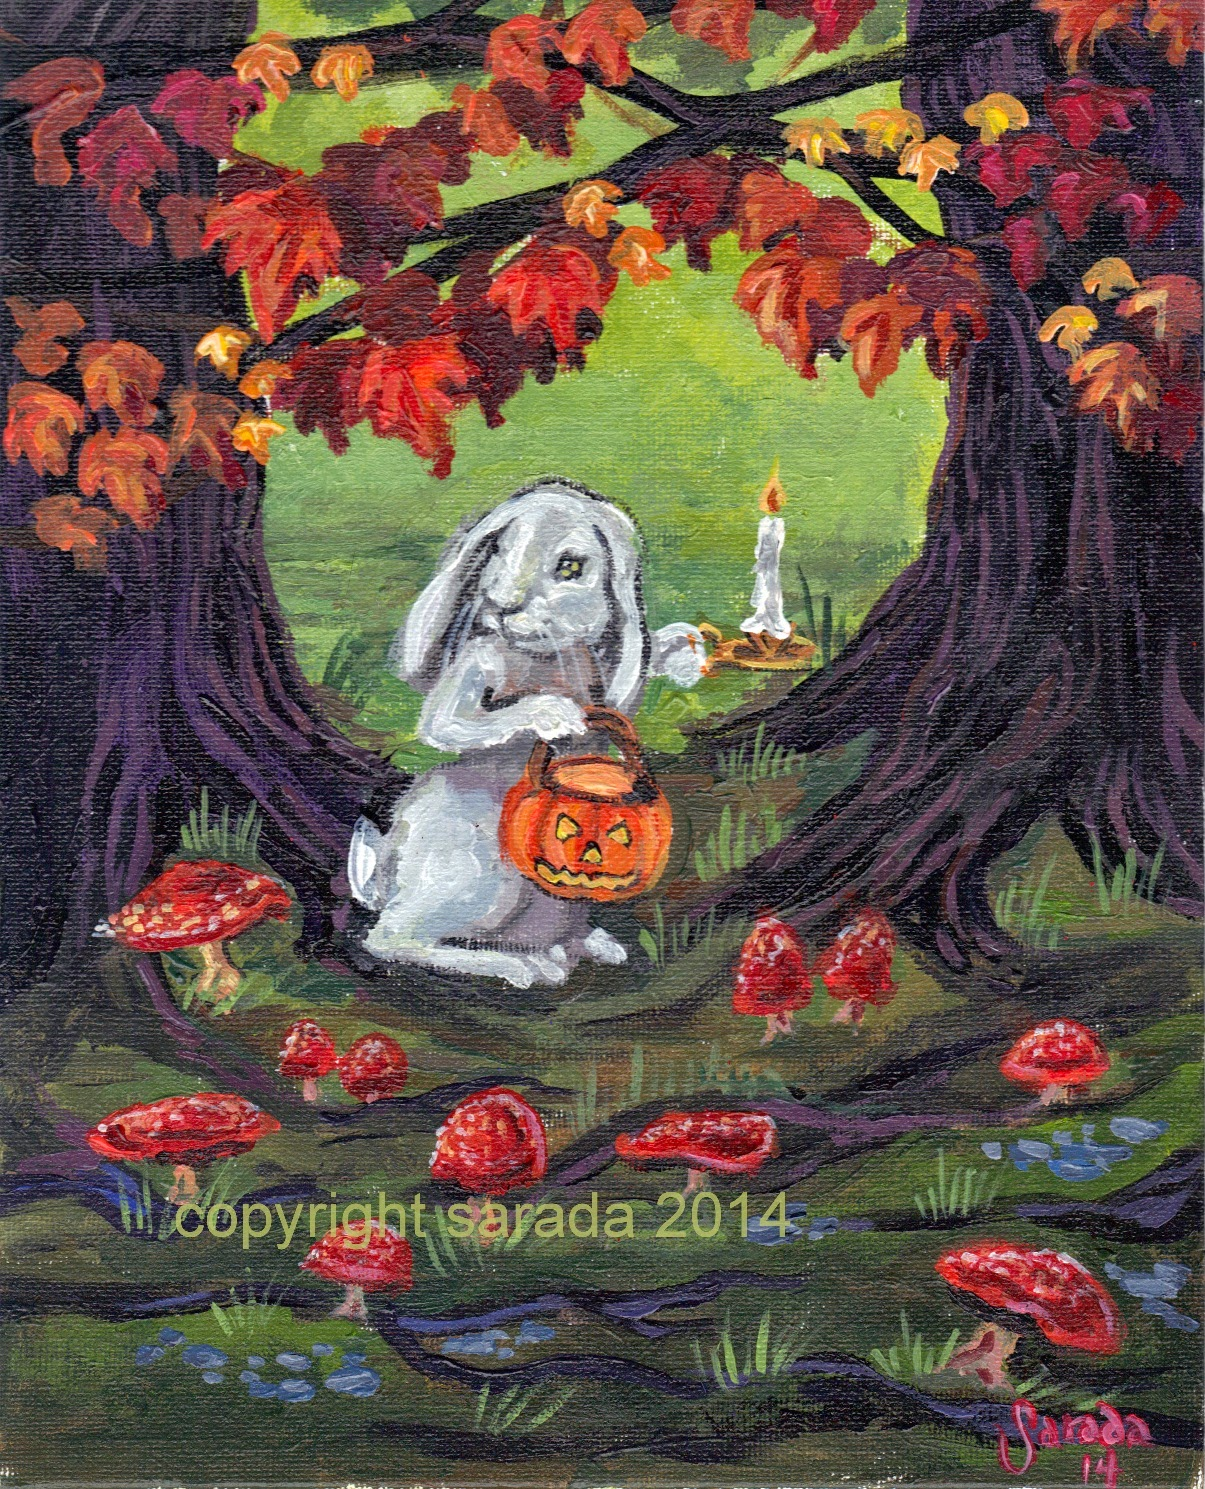 https://www.etsy.com/listing/198305456/halloween-painting-original-8-x-10?ref=listing-shop-header-0